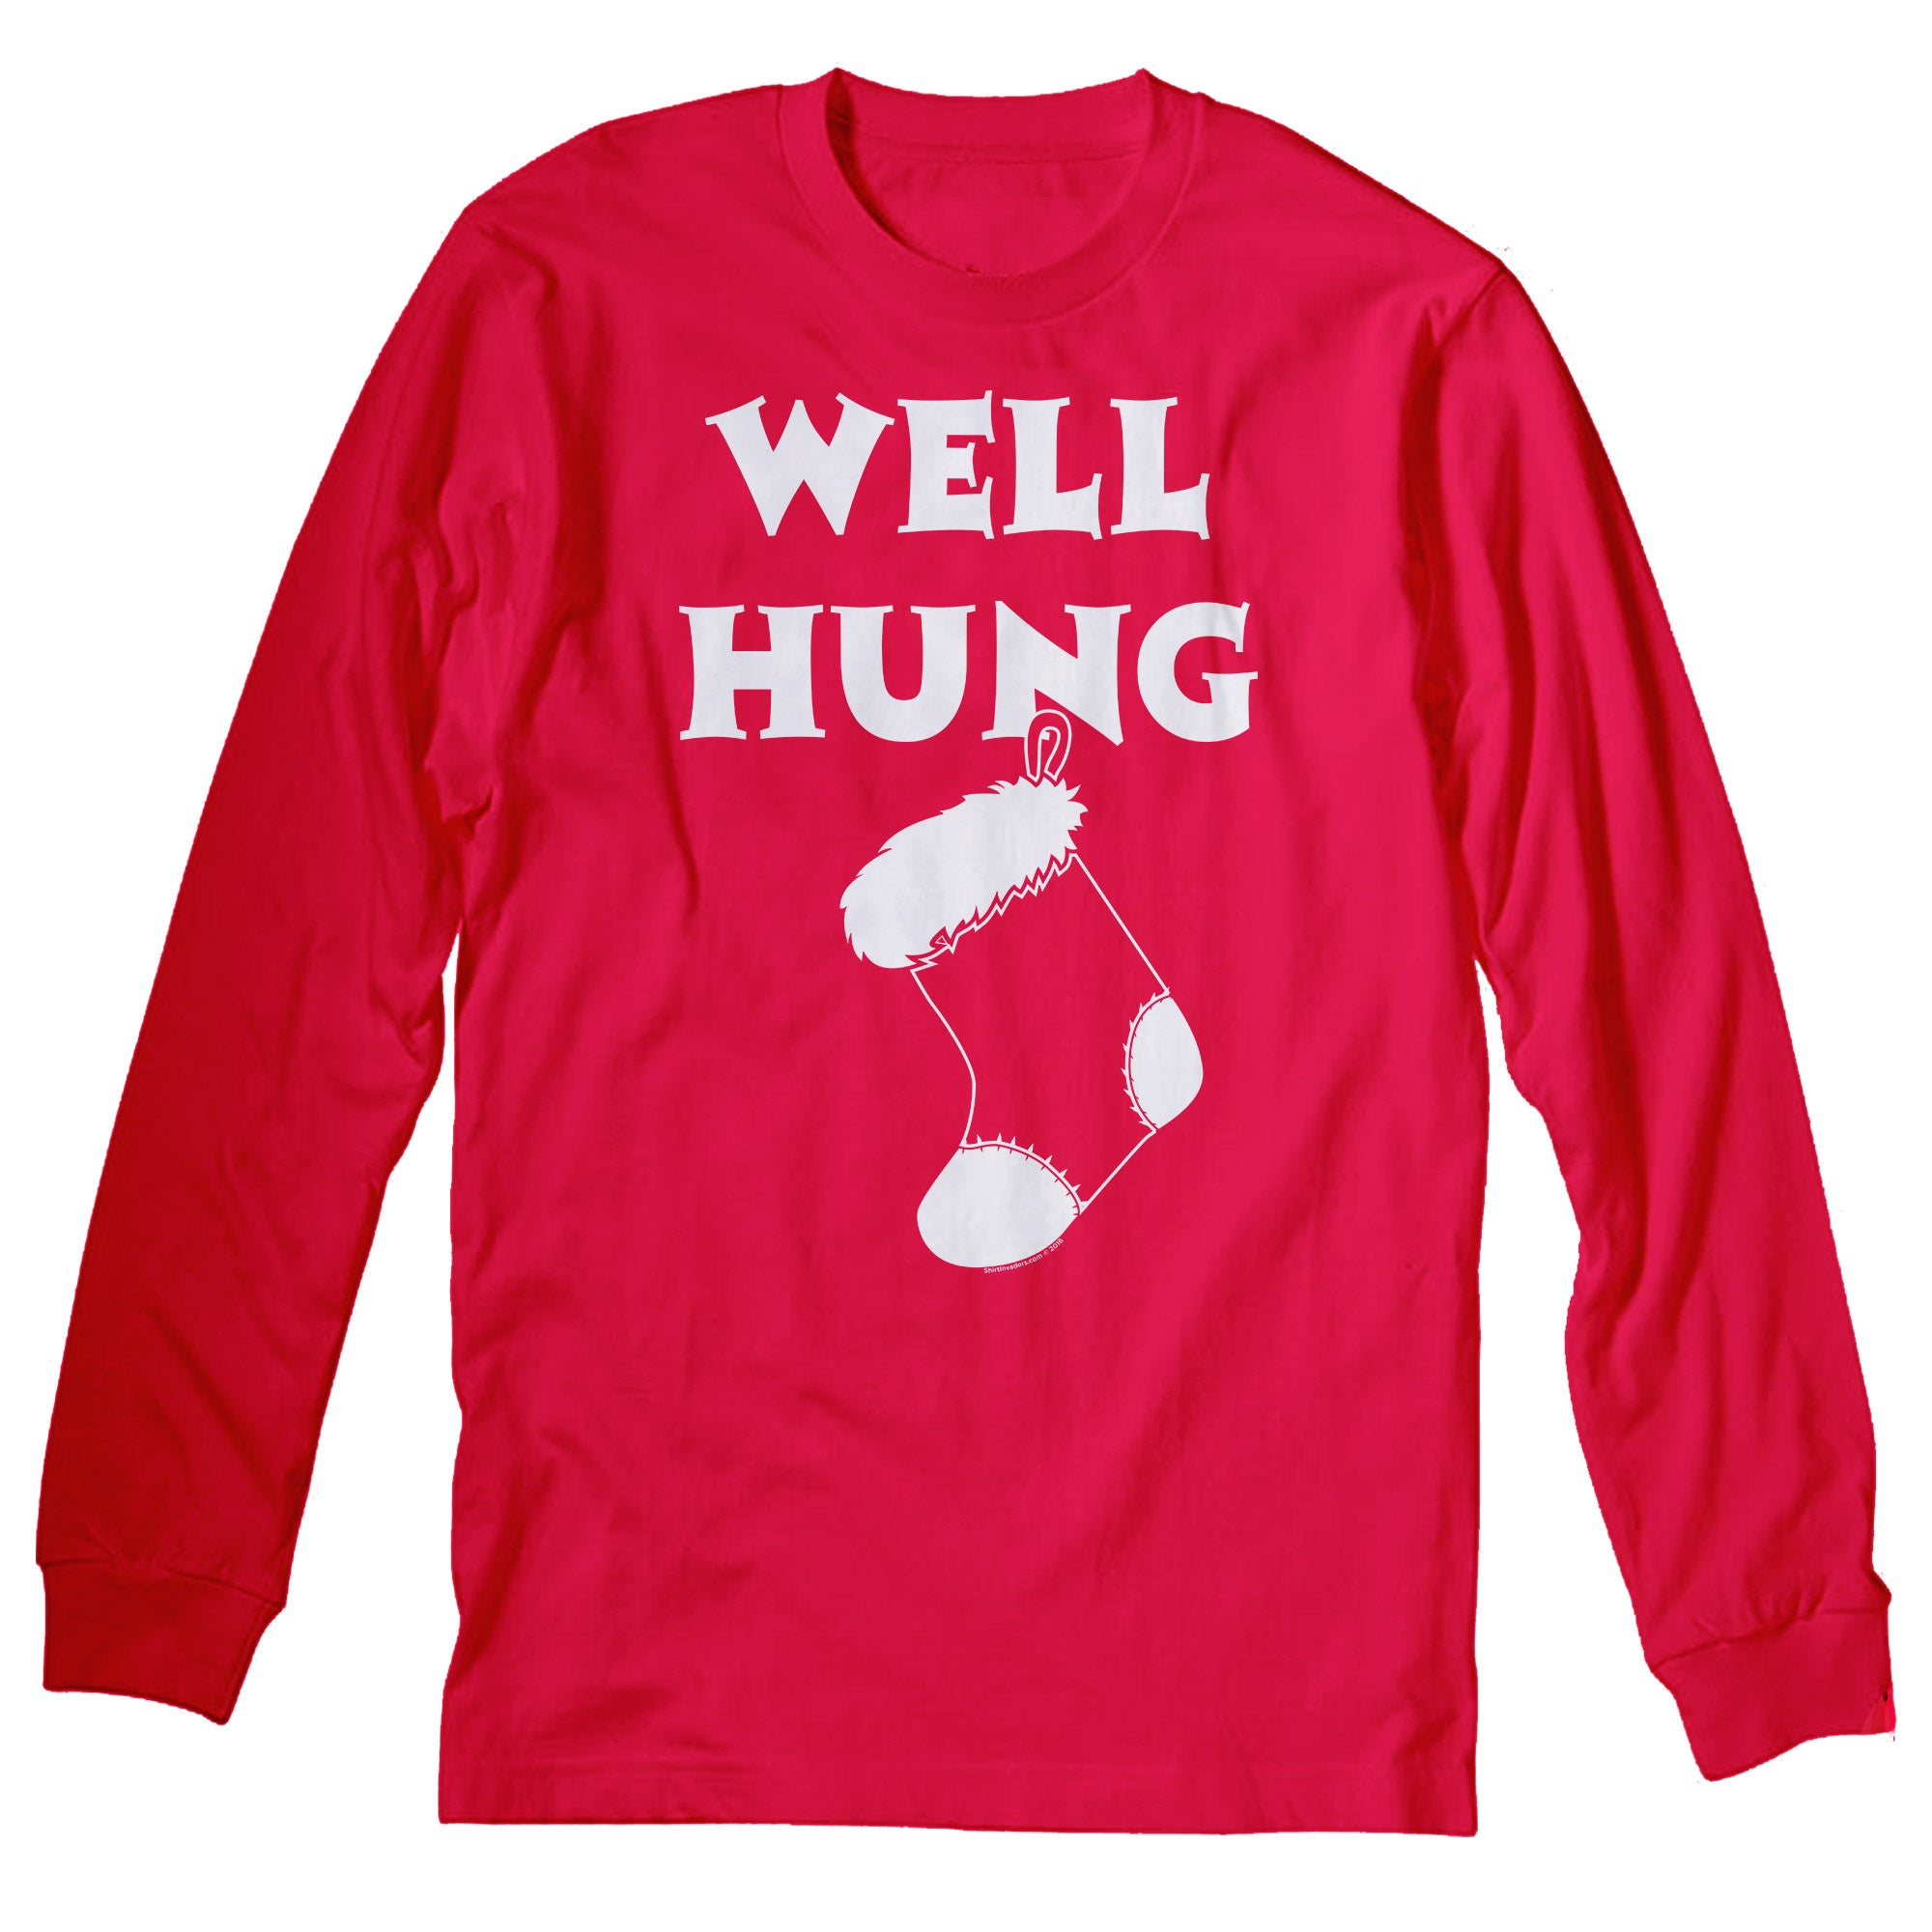 Well Hung - Christmas Long Sleeve Shirt